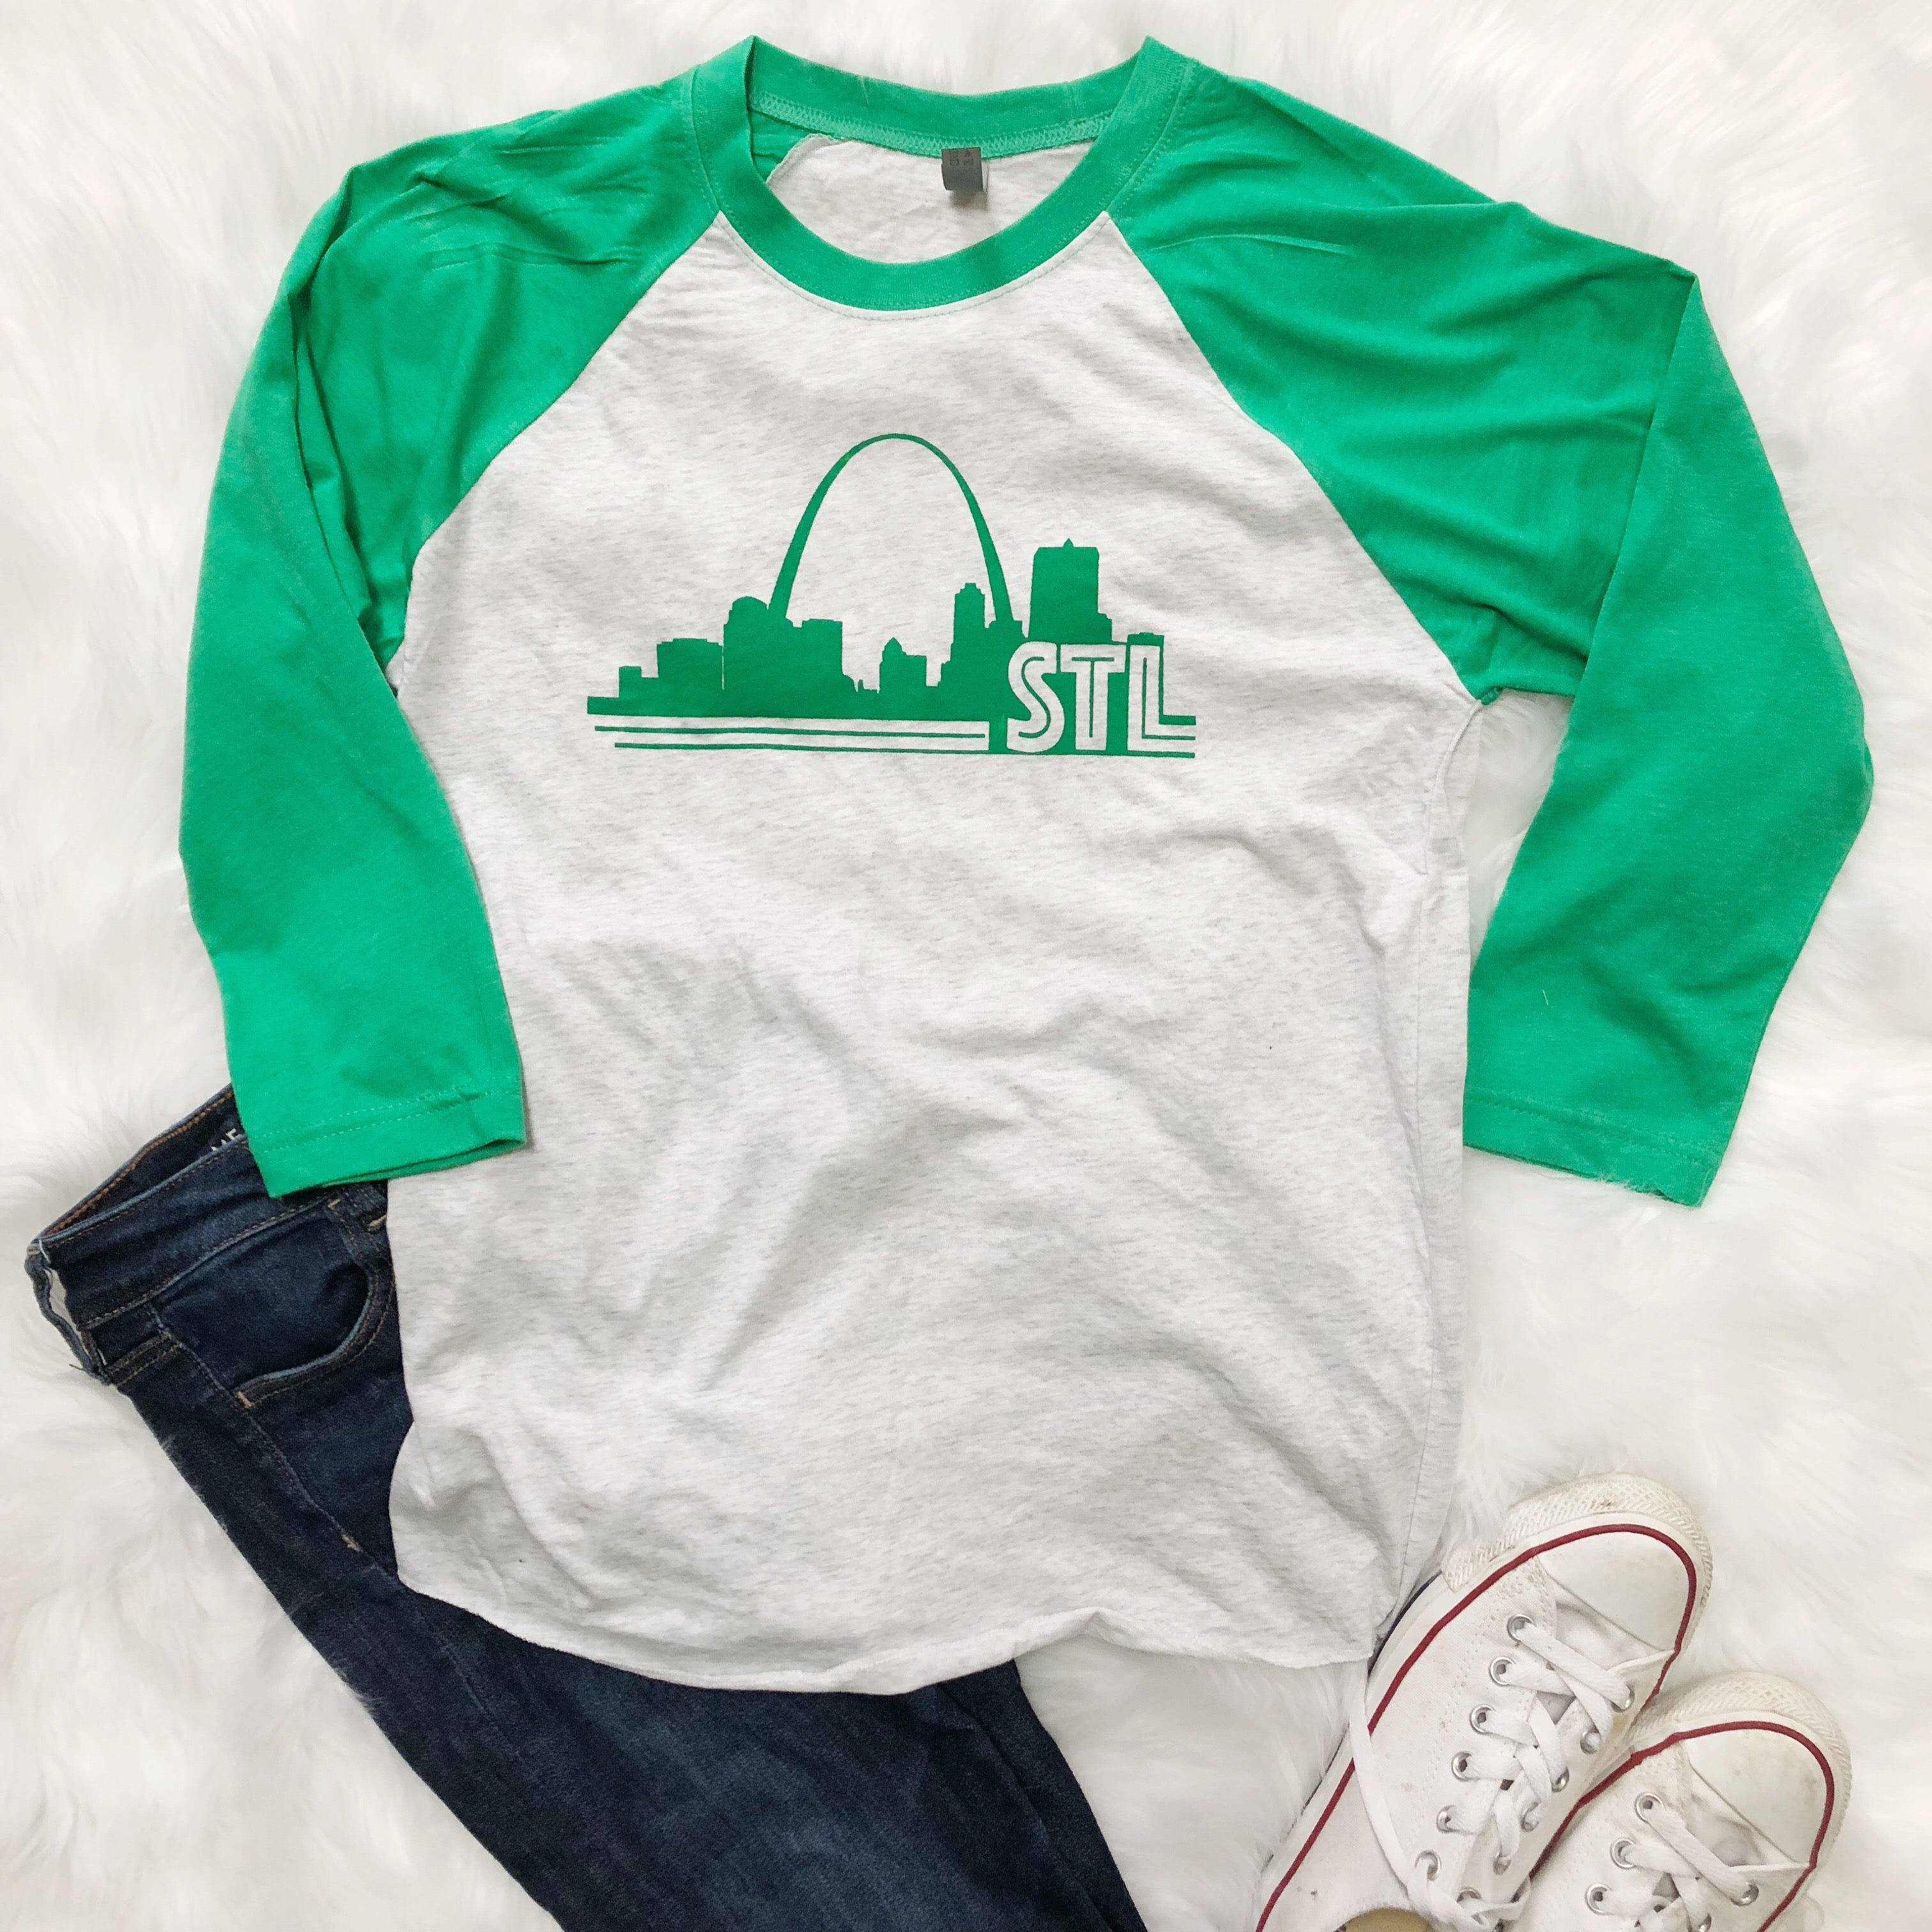 Men's/Women's 3/4 Sleeve Raglan St. Louis Green Arch Shirt